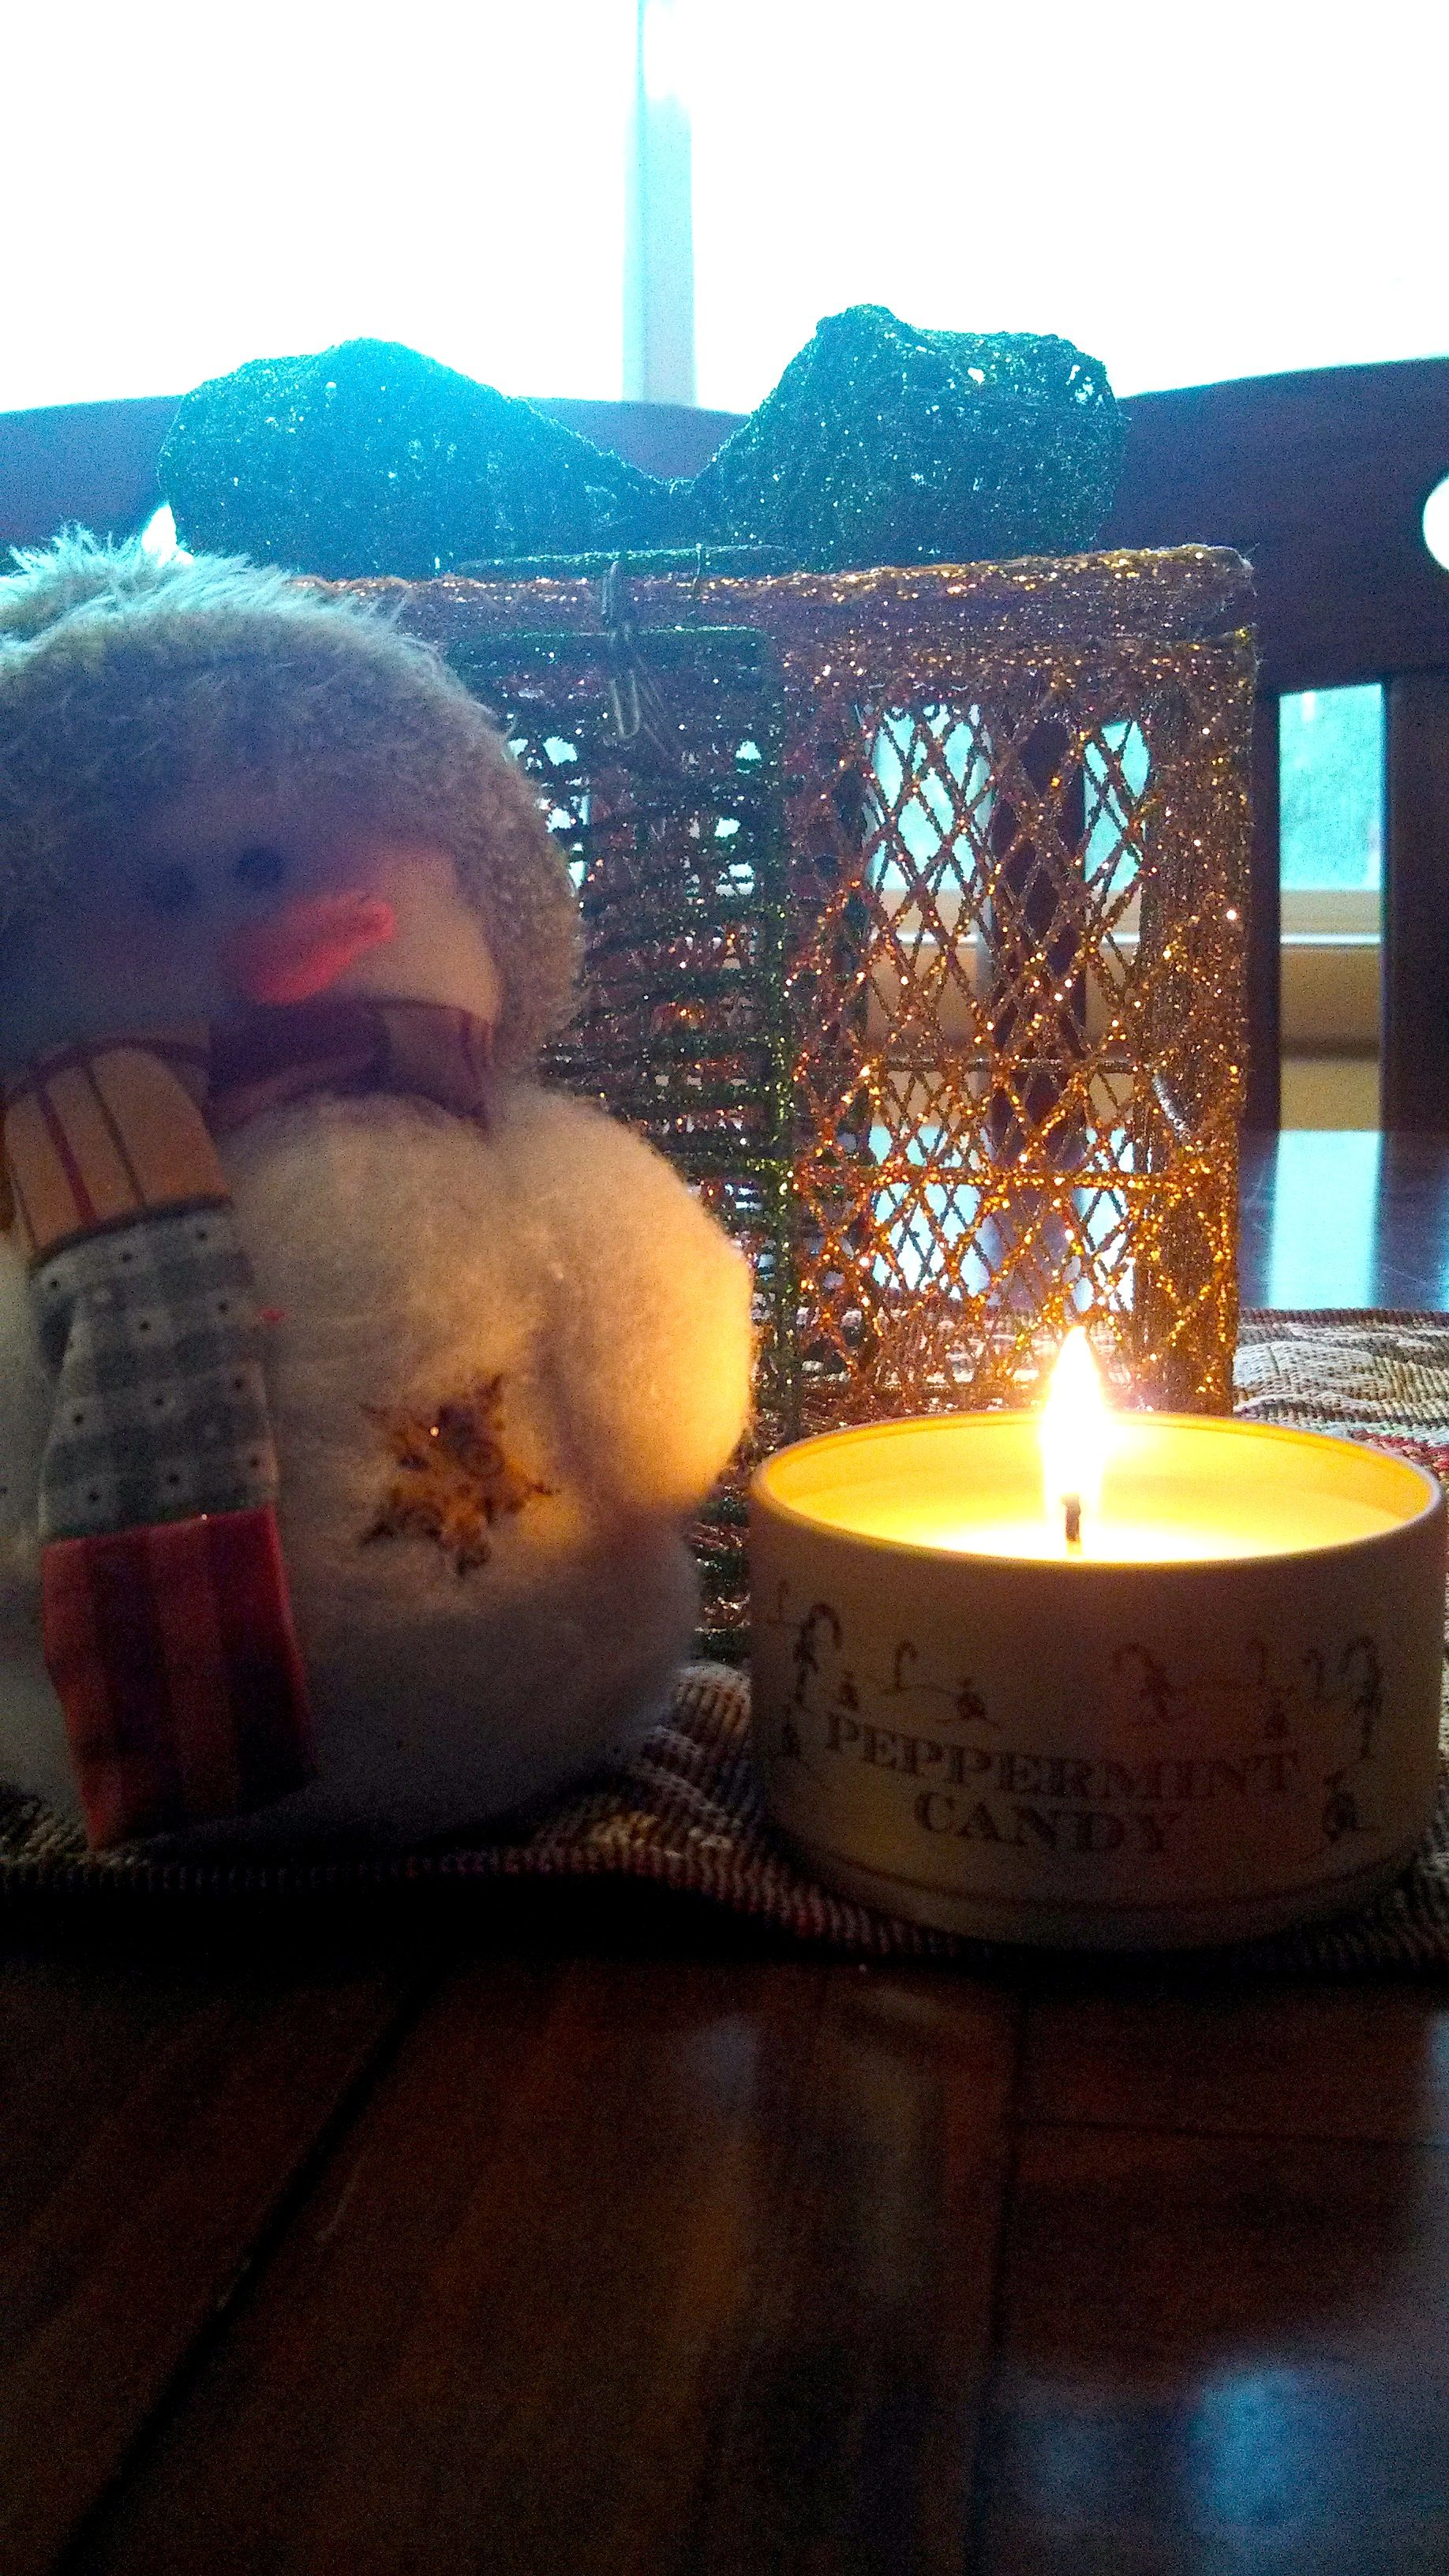 Better make sure Mr. Snowman doesn't get too close…..we don't want him to melt ;) www.jewelscent.com/sarahb